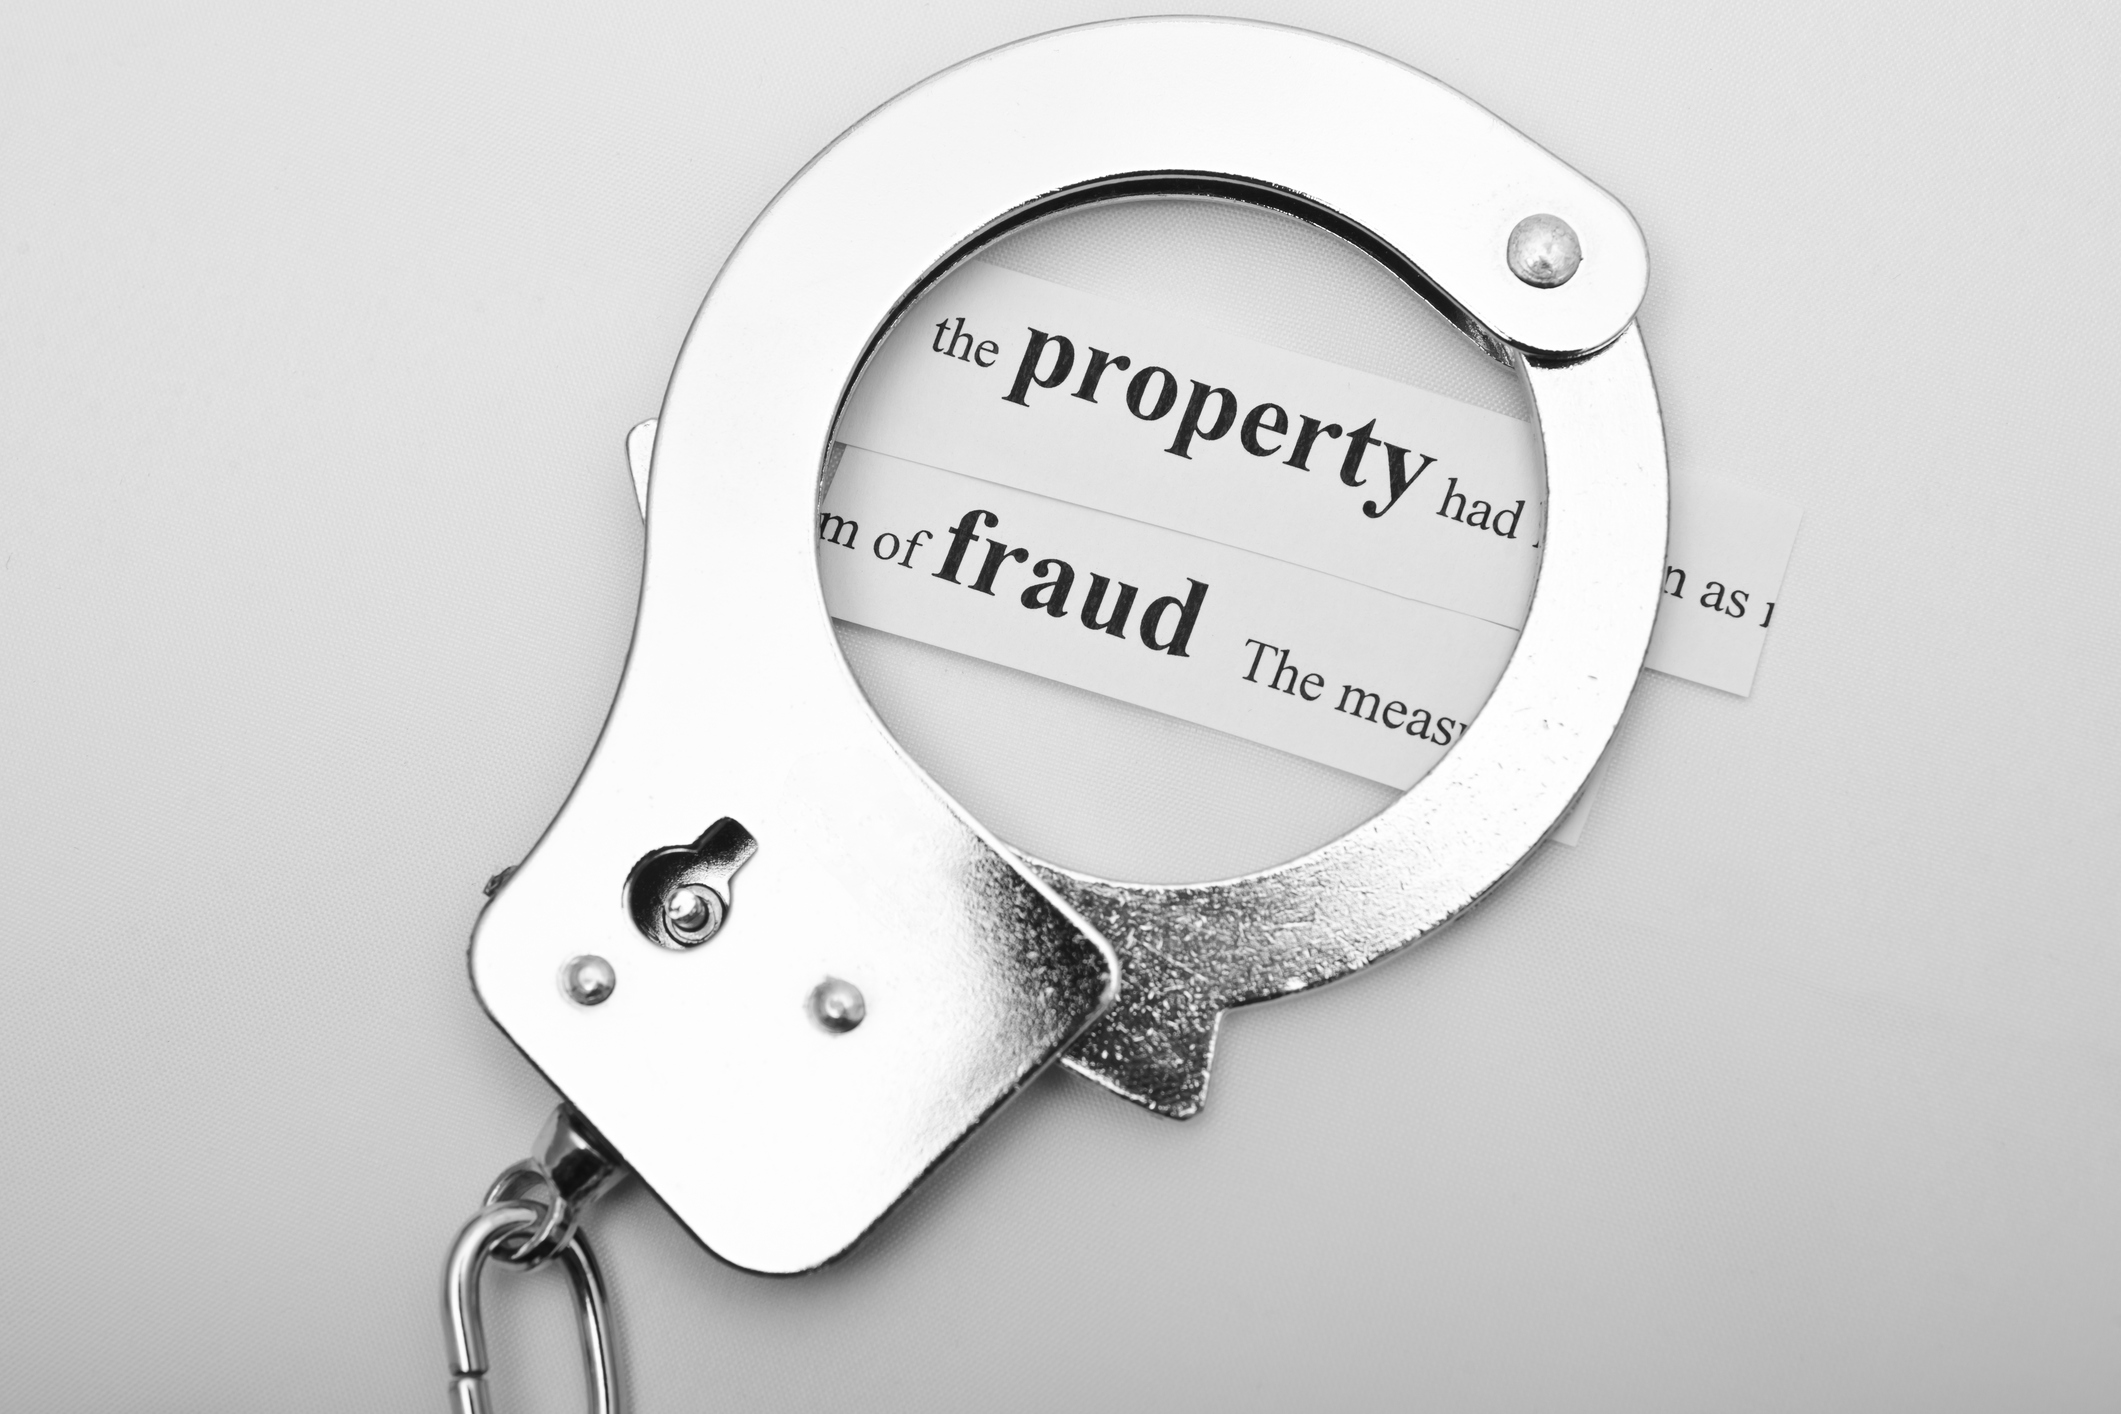 shiny handcuffs for Capital Gains Tax evader